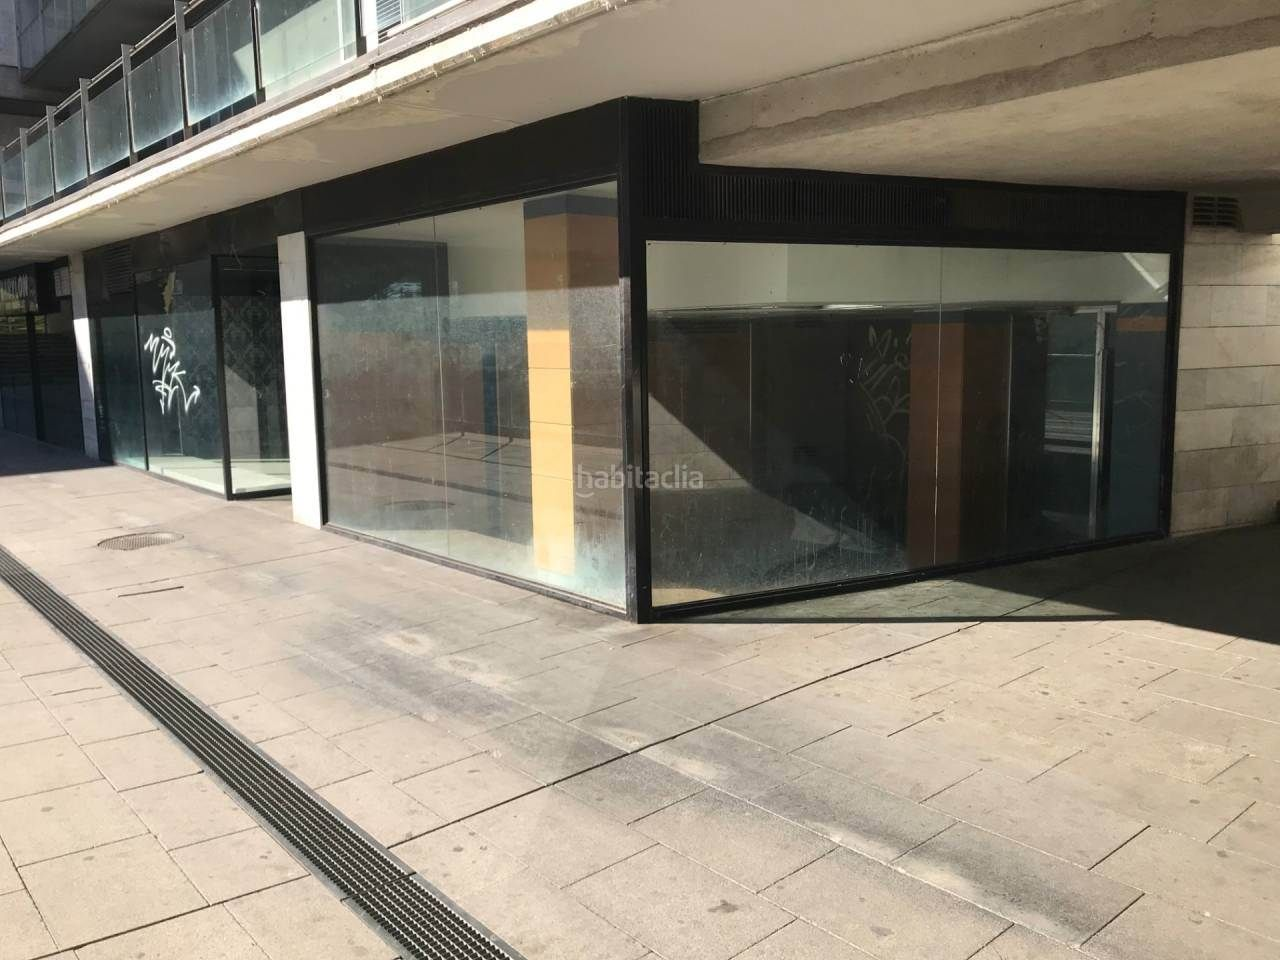 Local Comercial  Pza major. Local comercial en venta en centre